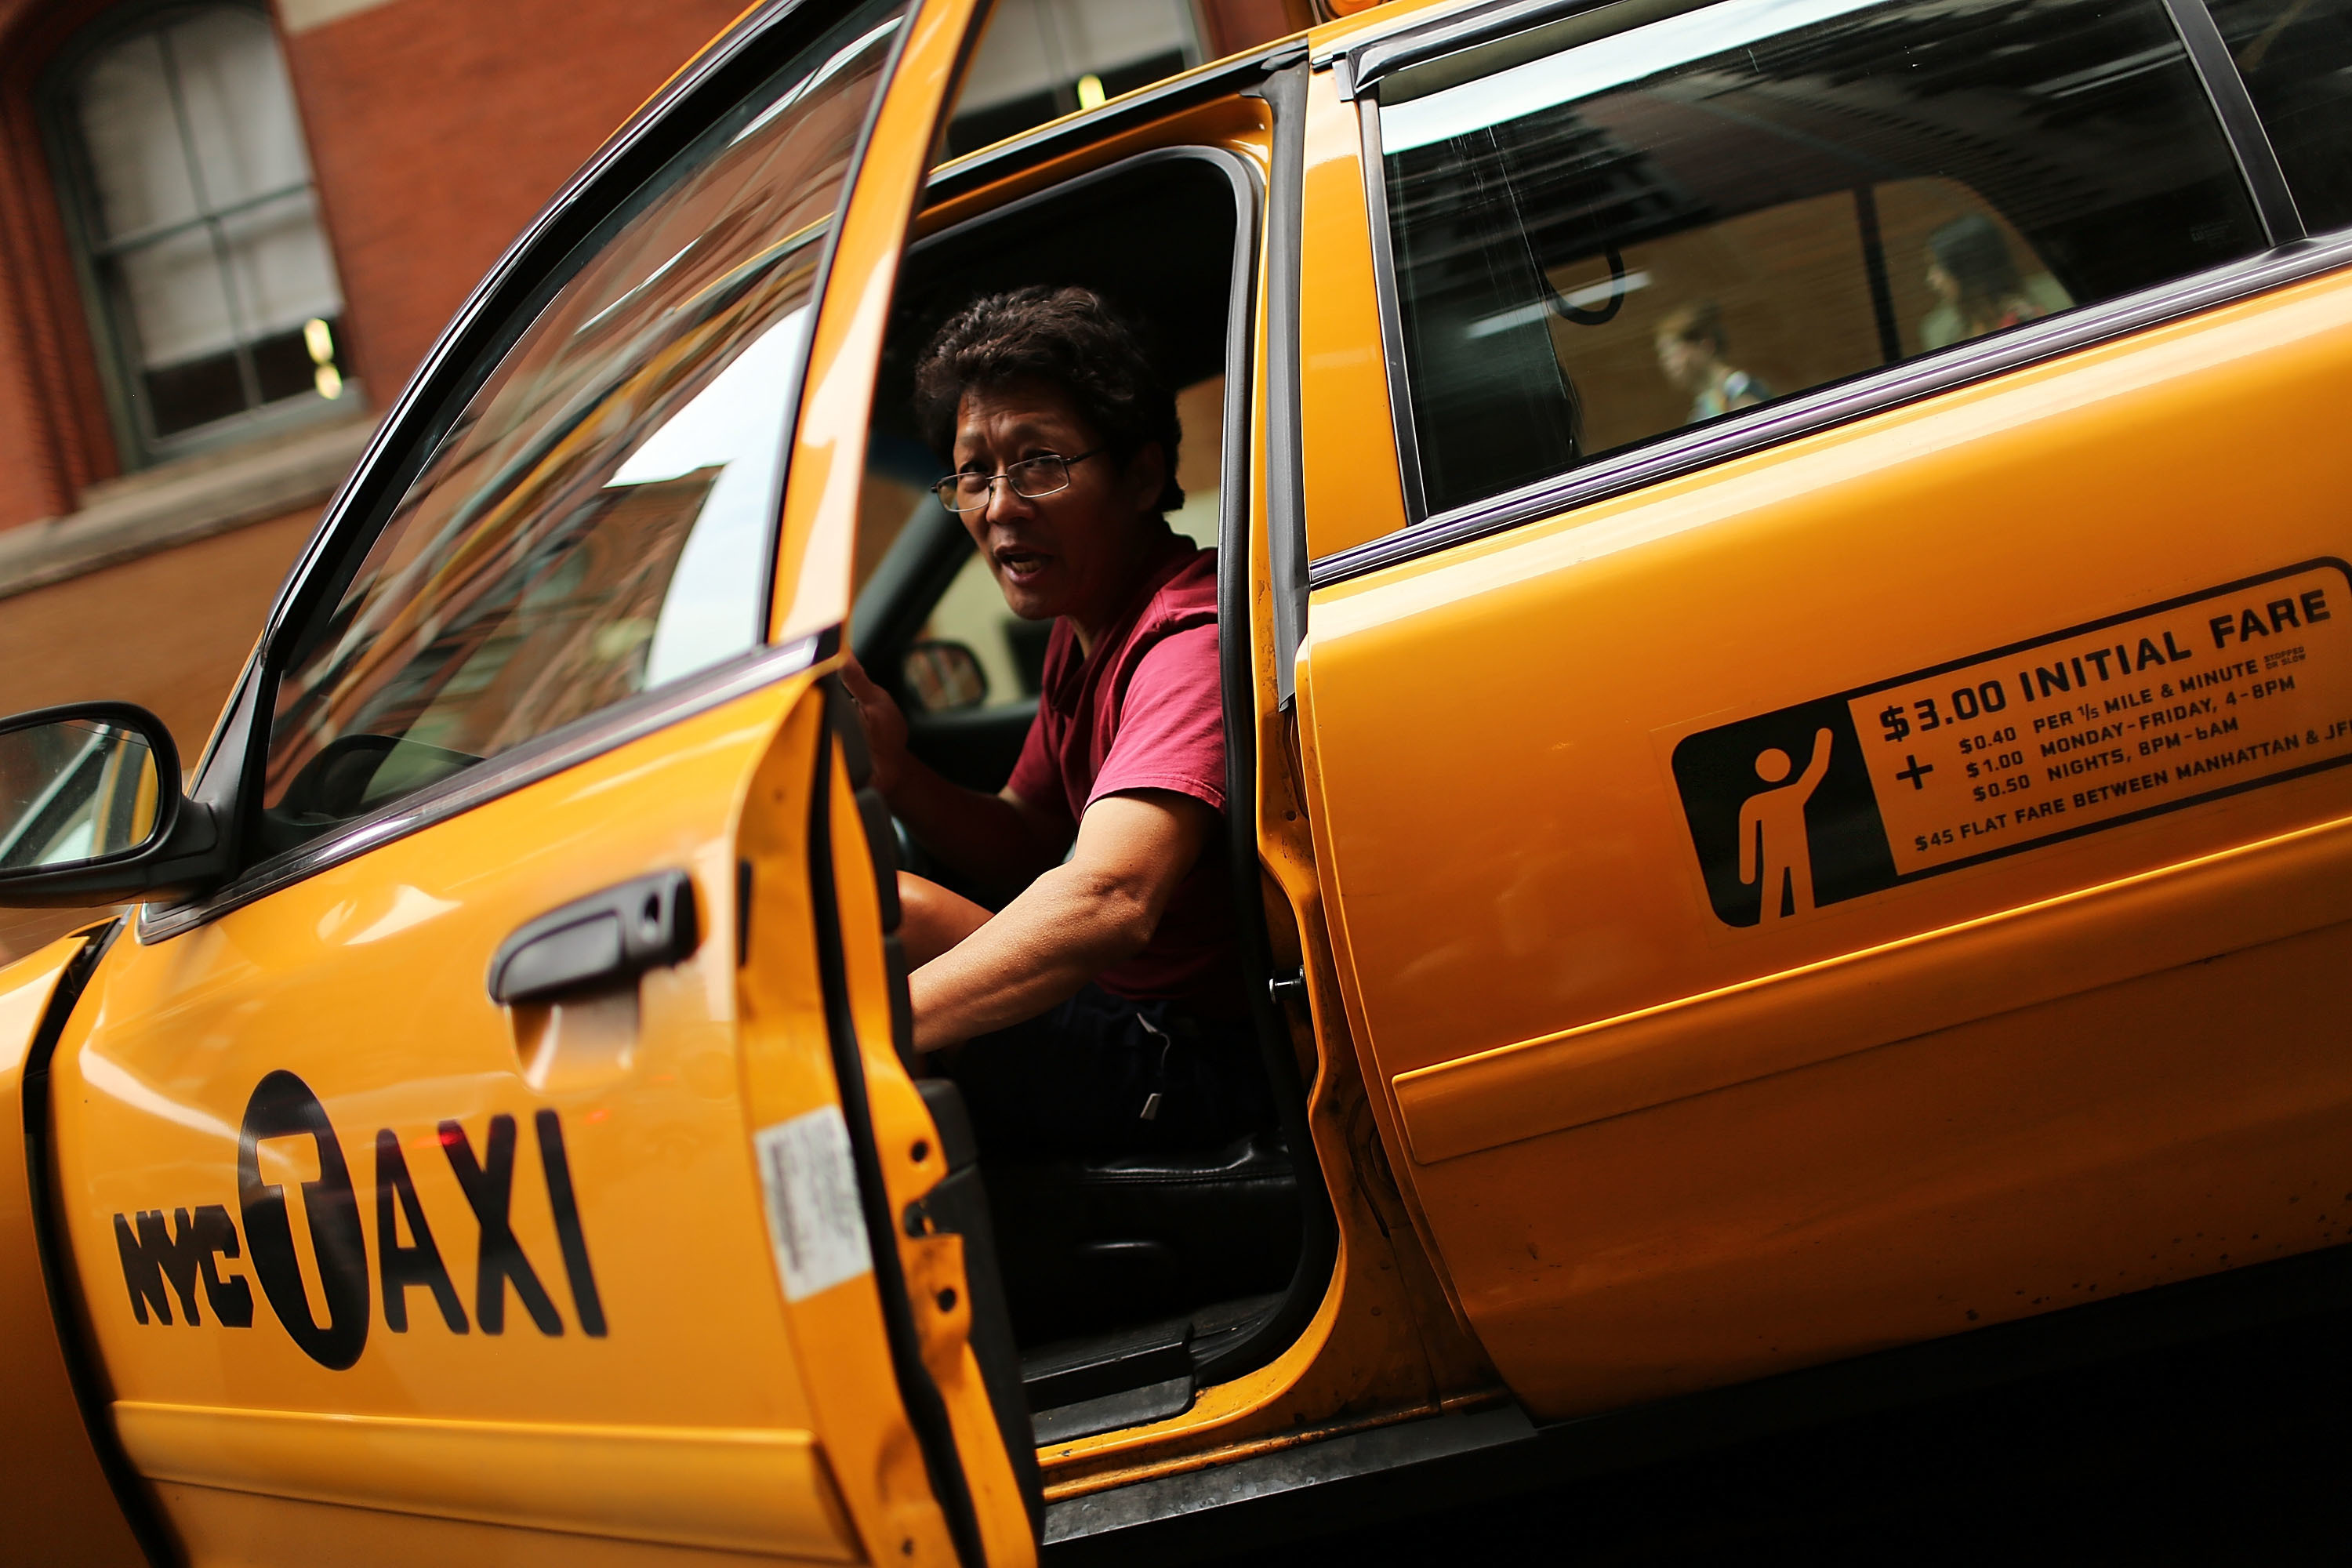 new york city taxi rates